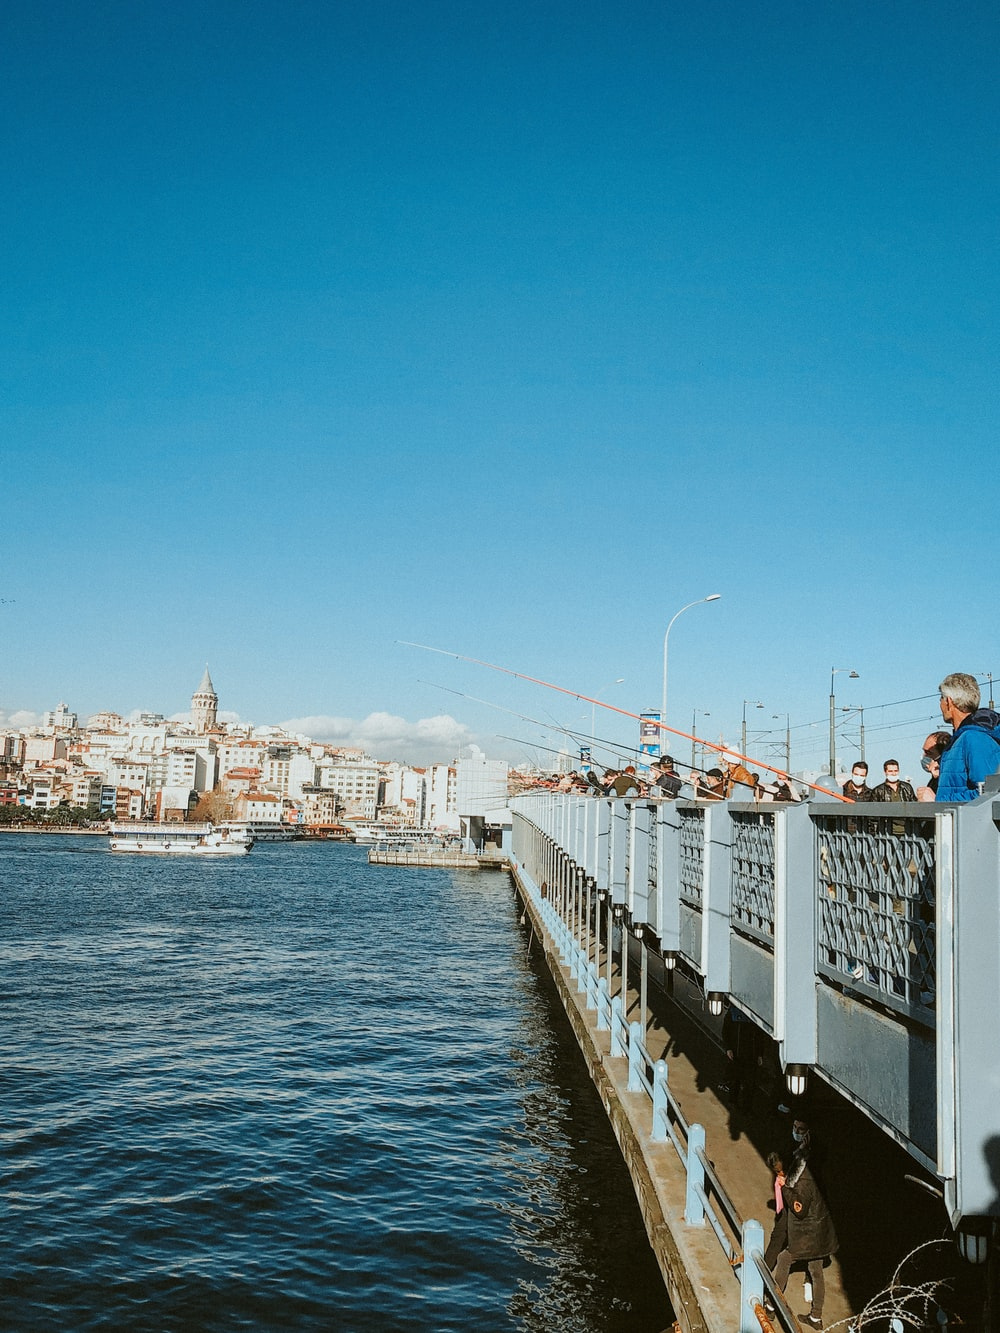 people on white and black bridge over blue sea during daytime